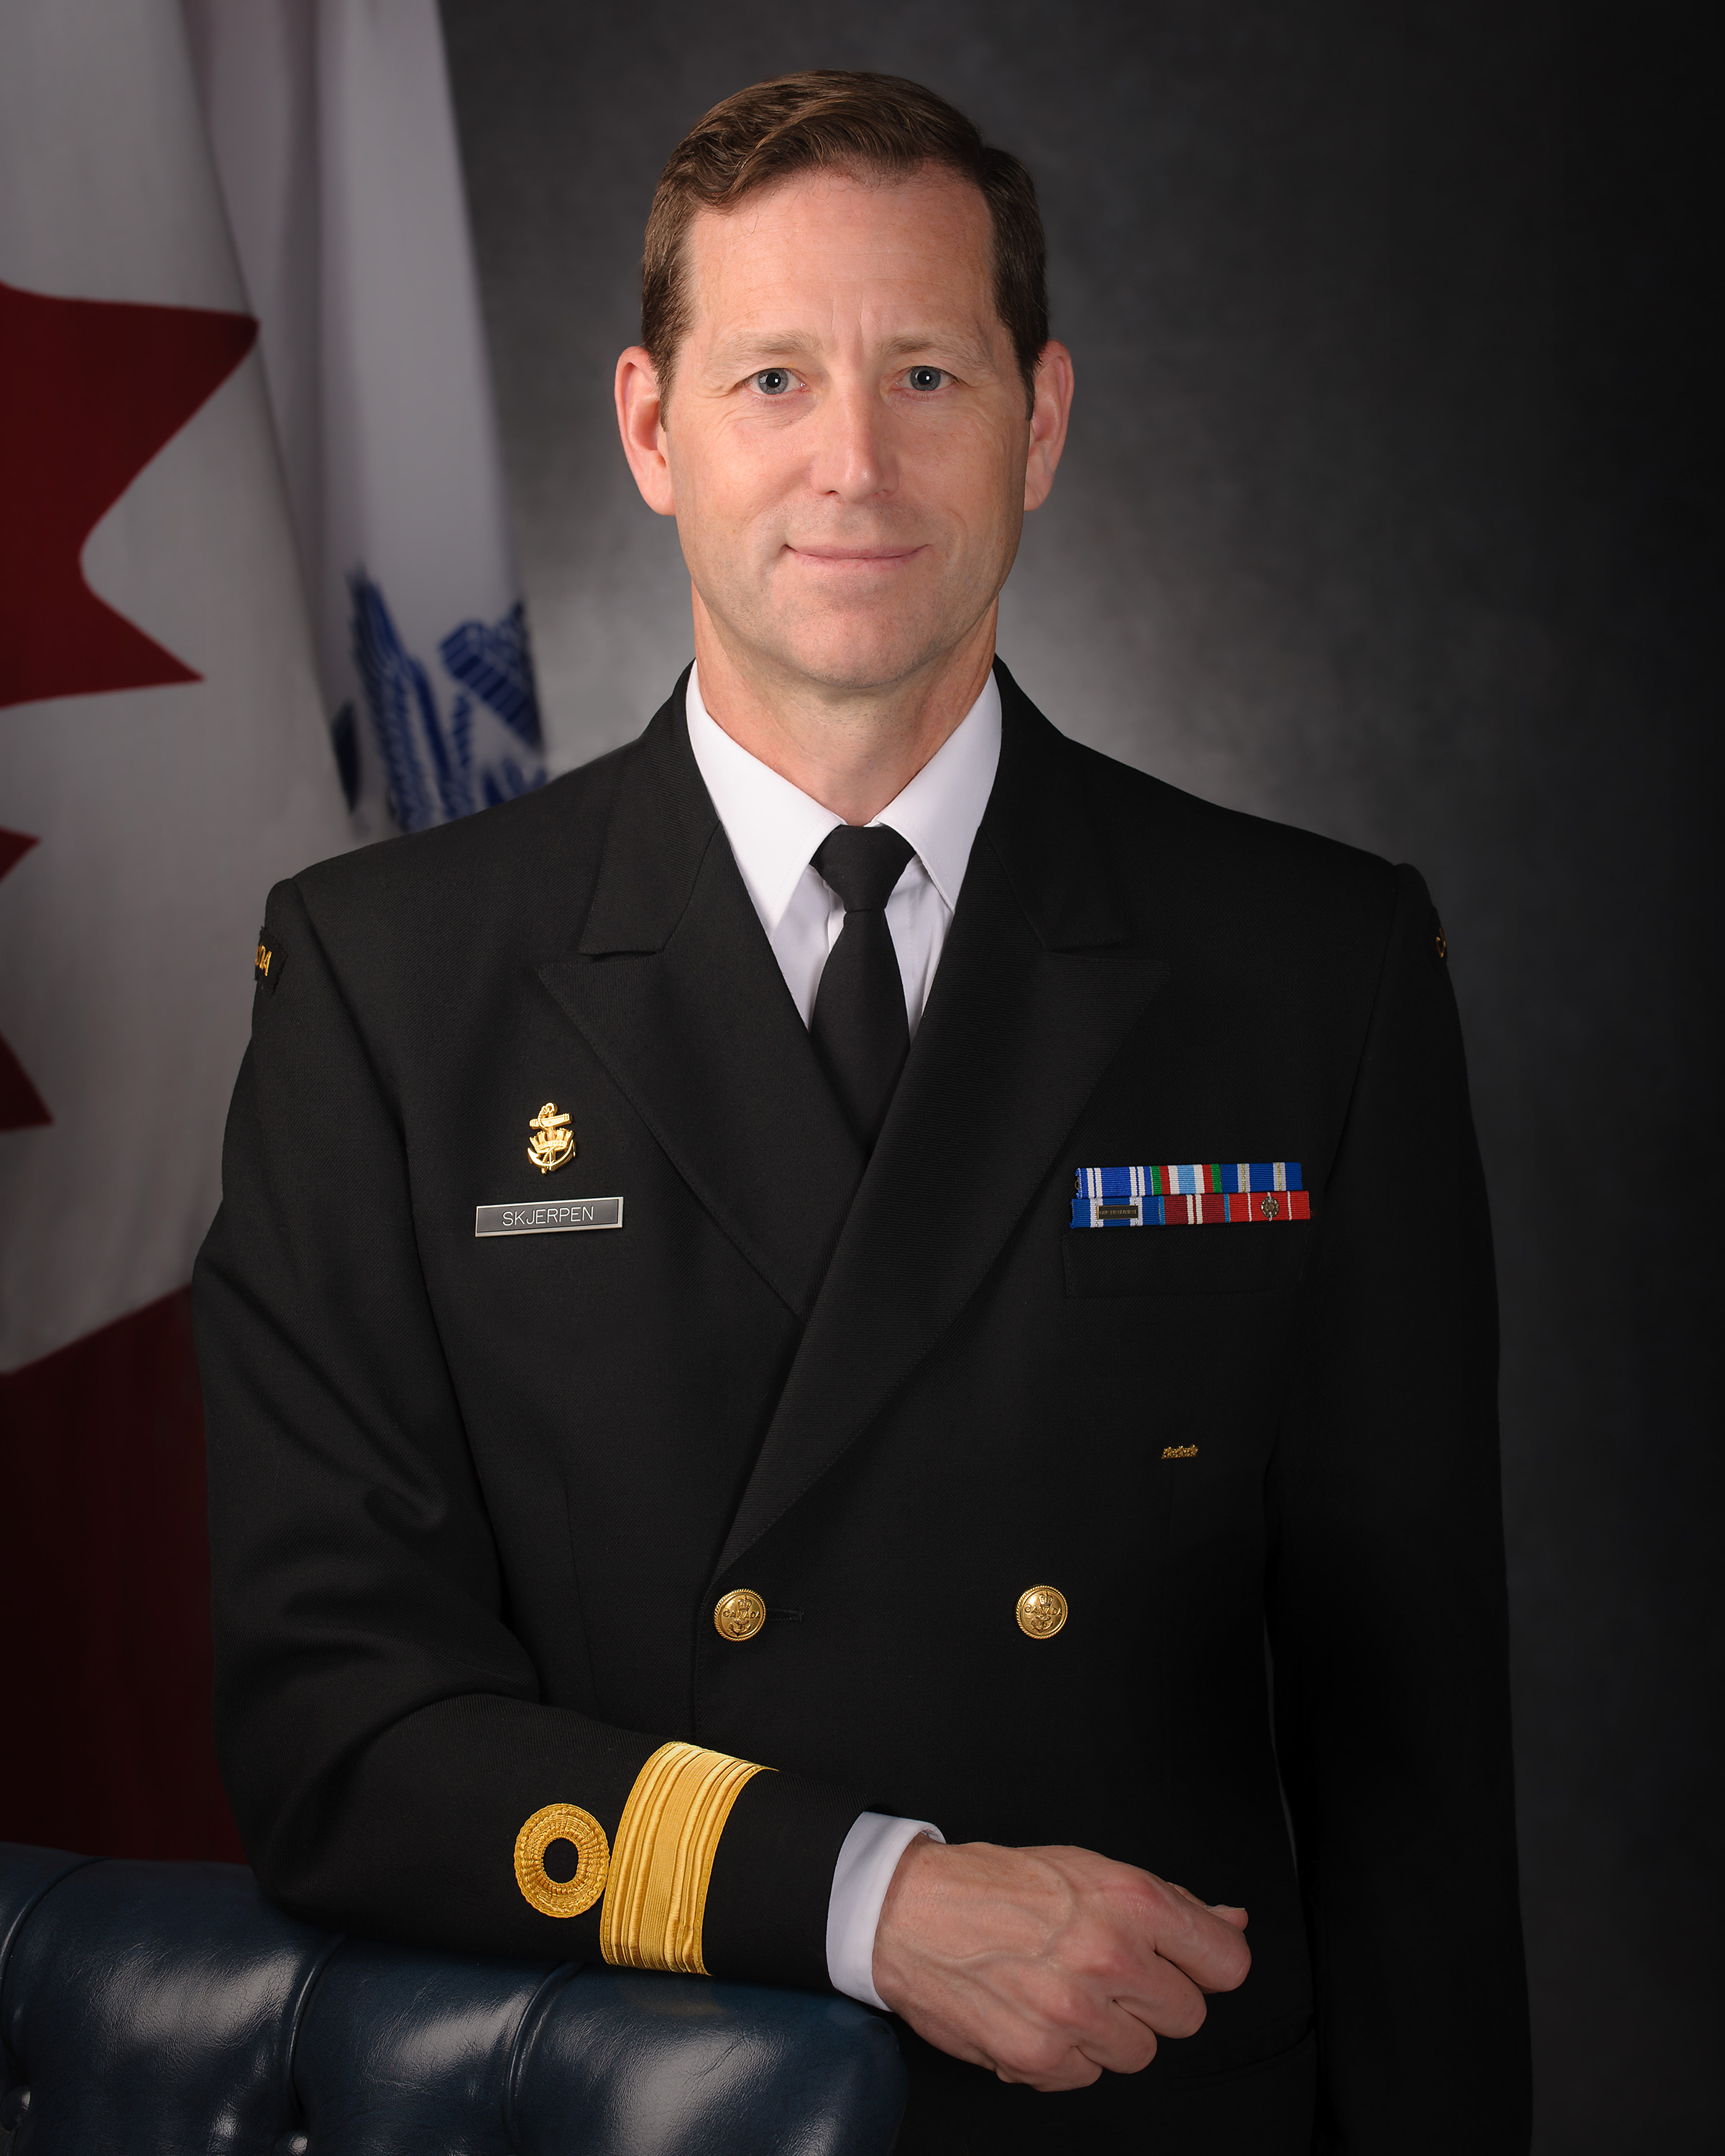 COMMODORE C.T. SKJERPEN, MSM, CD